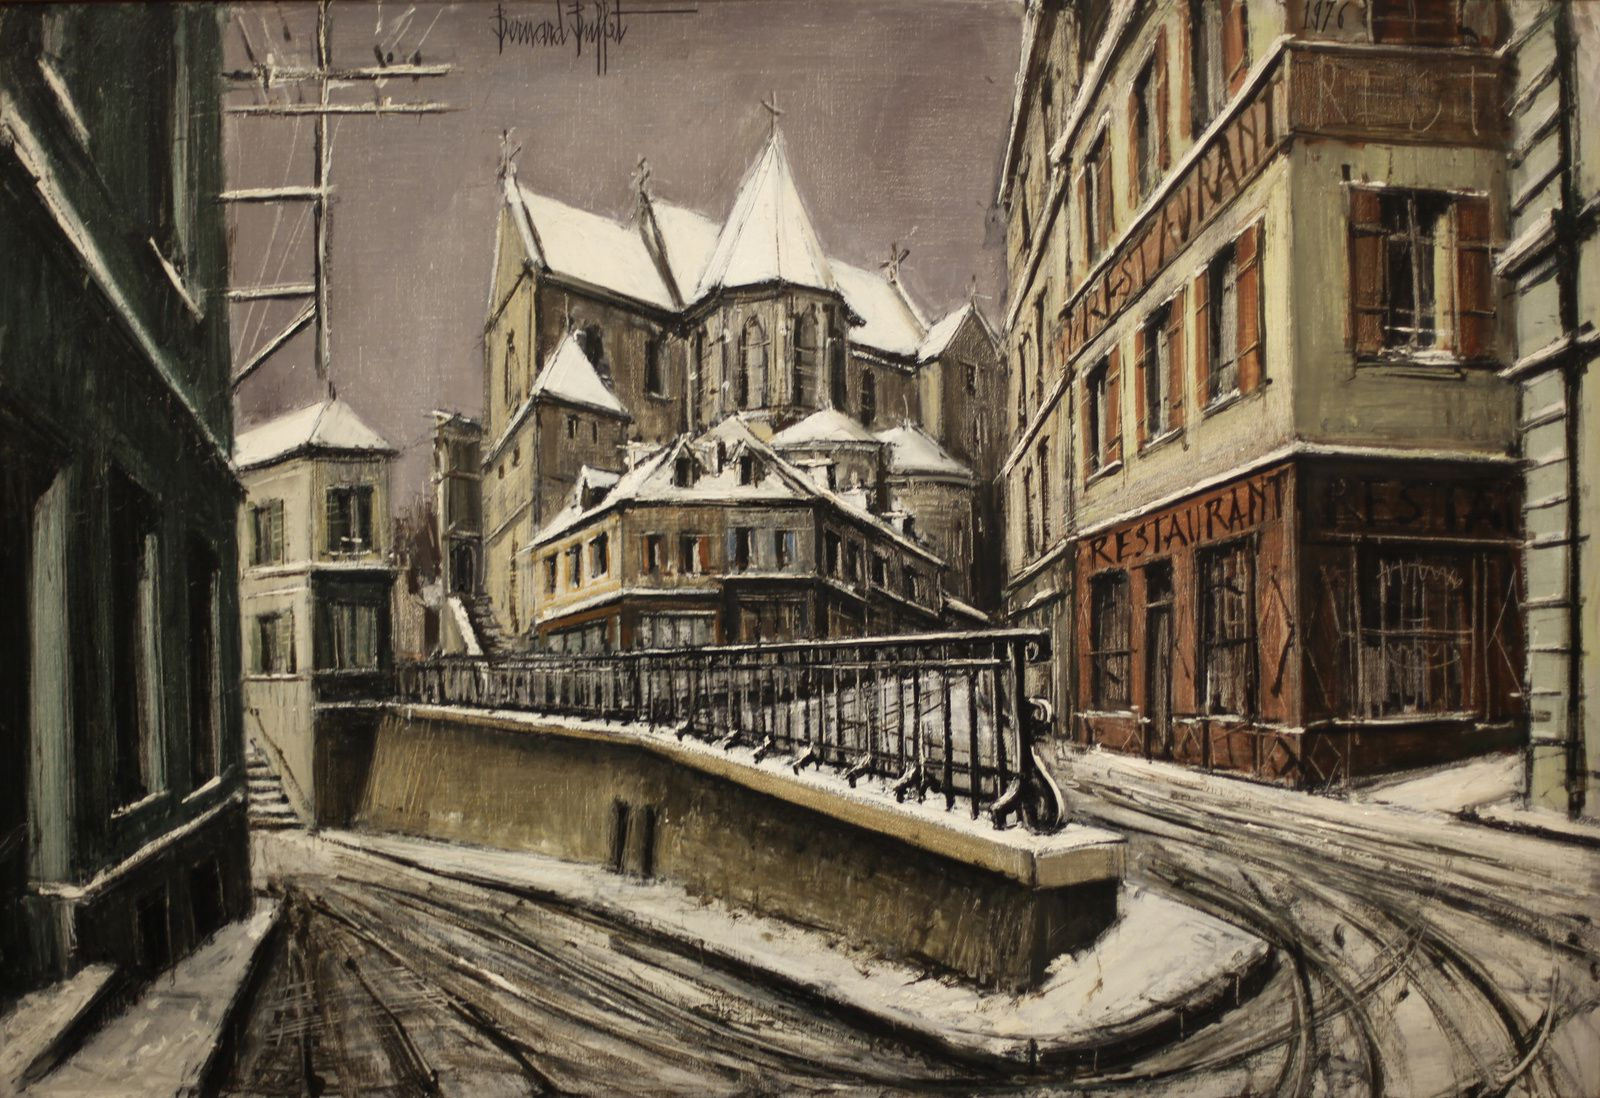 """Paysages de neige, Pontoise, l'Église Saint Maclou"", 1976 de Bernard BUFFET - Courtesy Fonds de dotation B. Buffet © Photo Éric Simon"